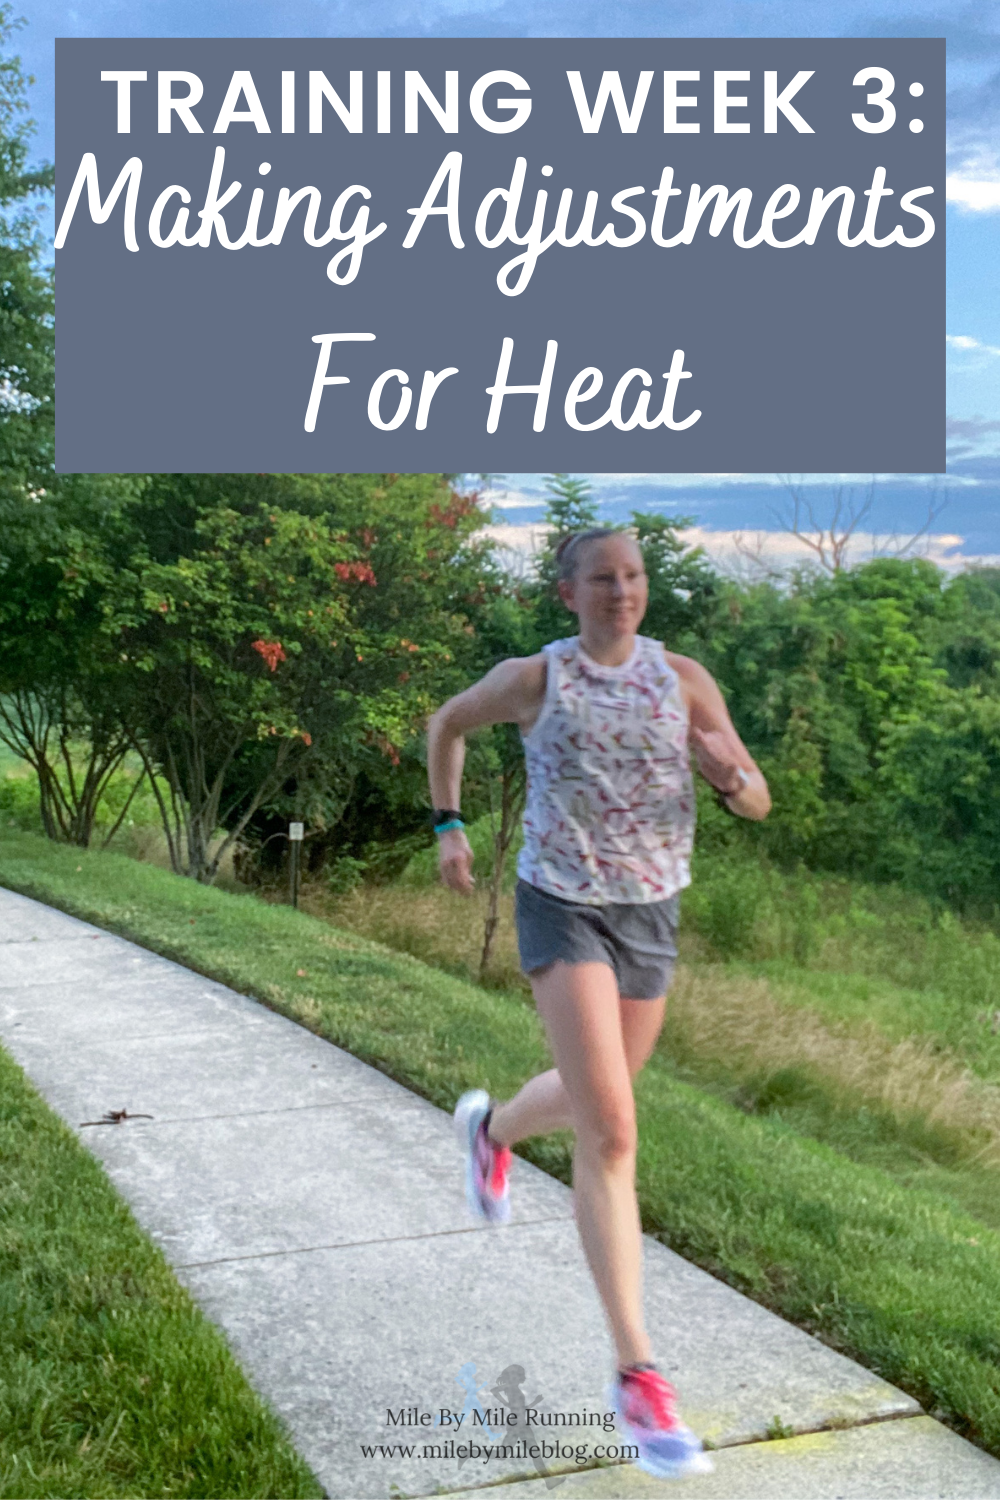 Another week of training is complete! It was another hot week with lots of adjustments for the heat. But it all worked out pretty well. I was also careful early in the week to make sure I was fully recovered from my 5k time trial last week. Here' a summary of how the week went.